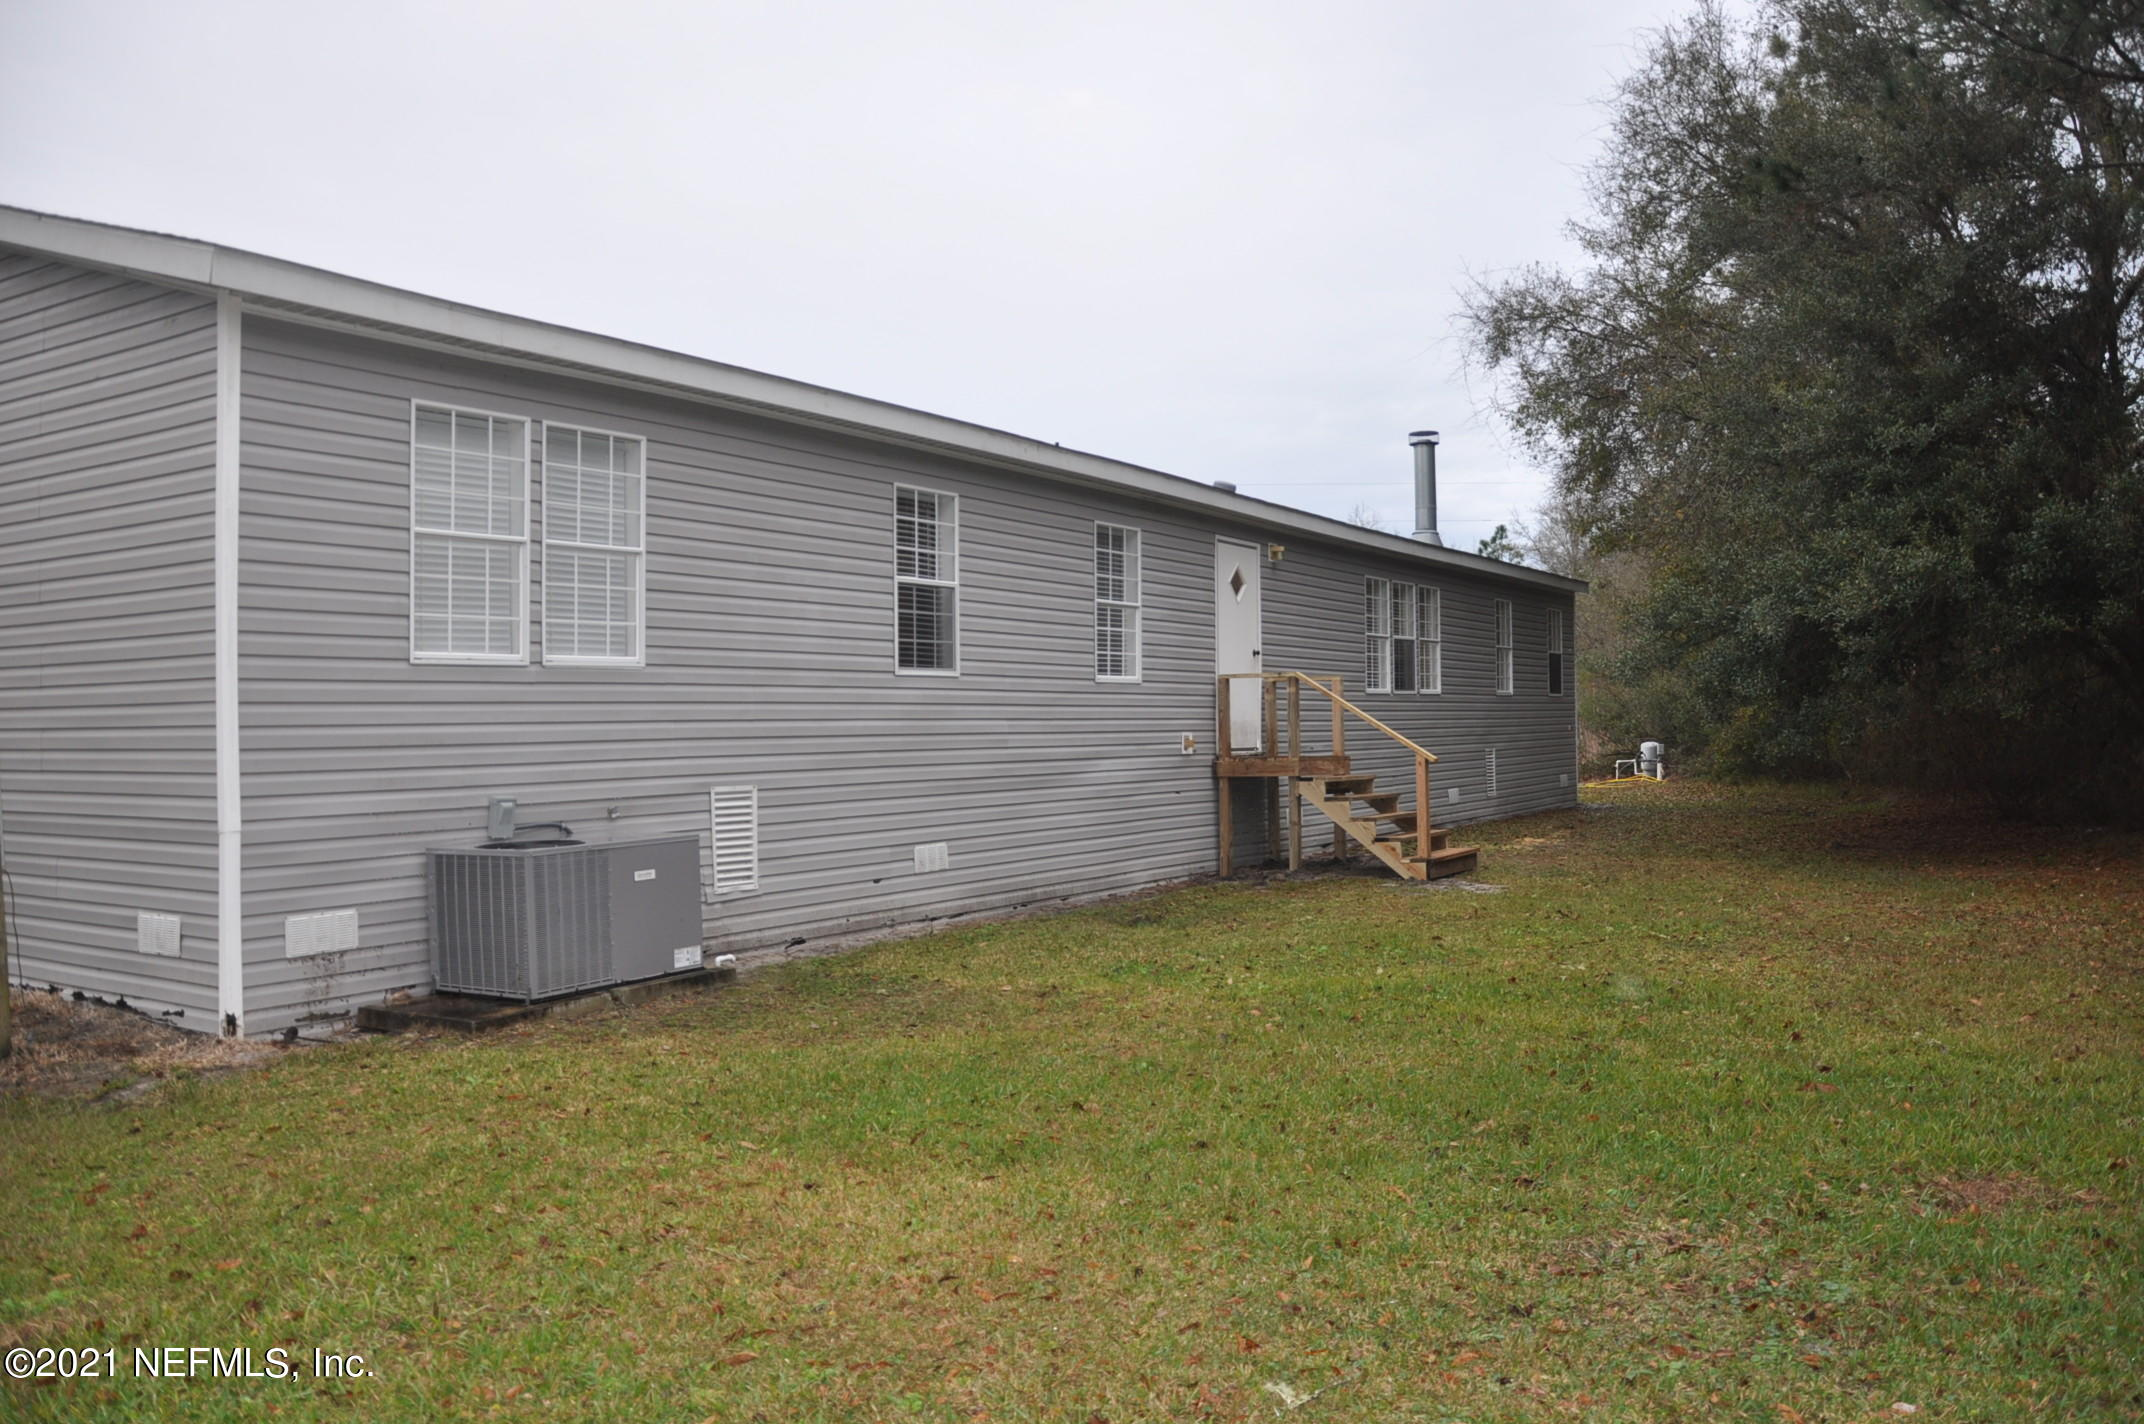 18186 35TH, STARKE, FLORIDA 32091, 4 Bedrooms Bedrooms, ,3 BathroomsBathrooms,Residential,For sale,35TH,1090210